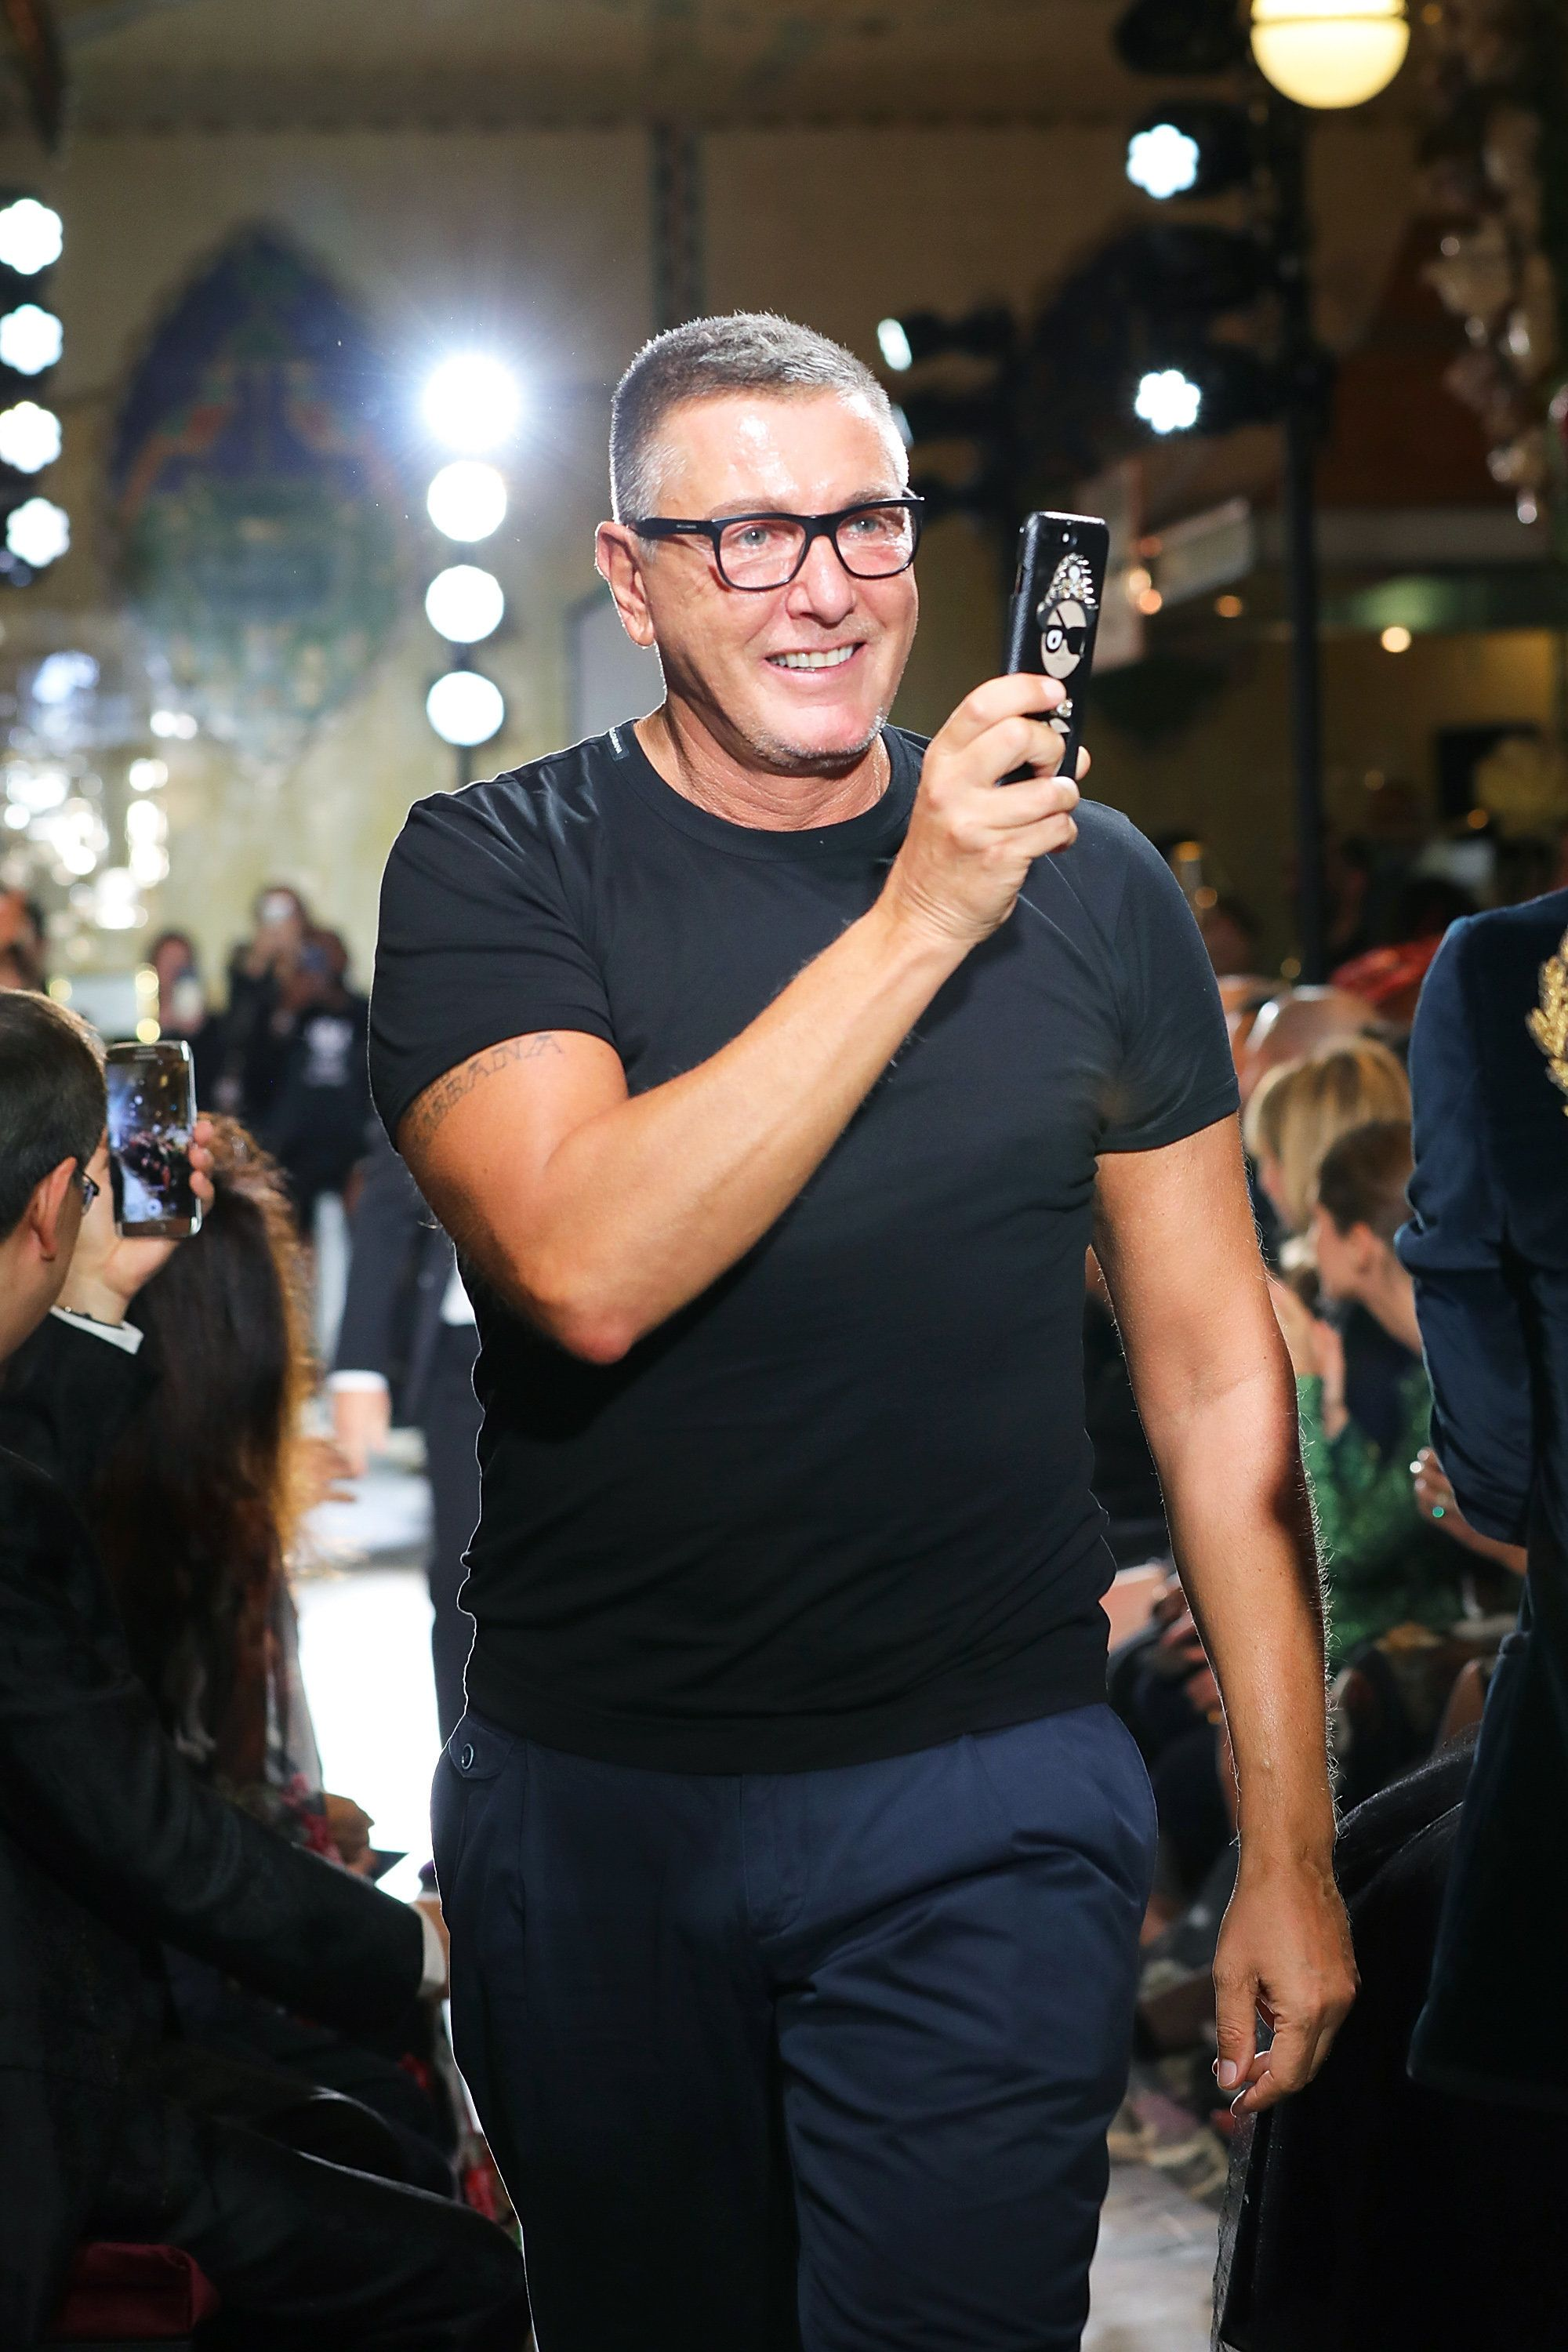 LONDON, ENGLAND - NOVEMBER 02: Stefano Gabbana at the Dolce & Gabbana Sun in a London Night Fashion Show at Harrods on November 2, 2017 in London, England.  (Photo by David M. Benett/Dave Benett/Getty Images for Harrods)